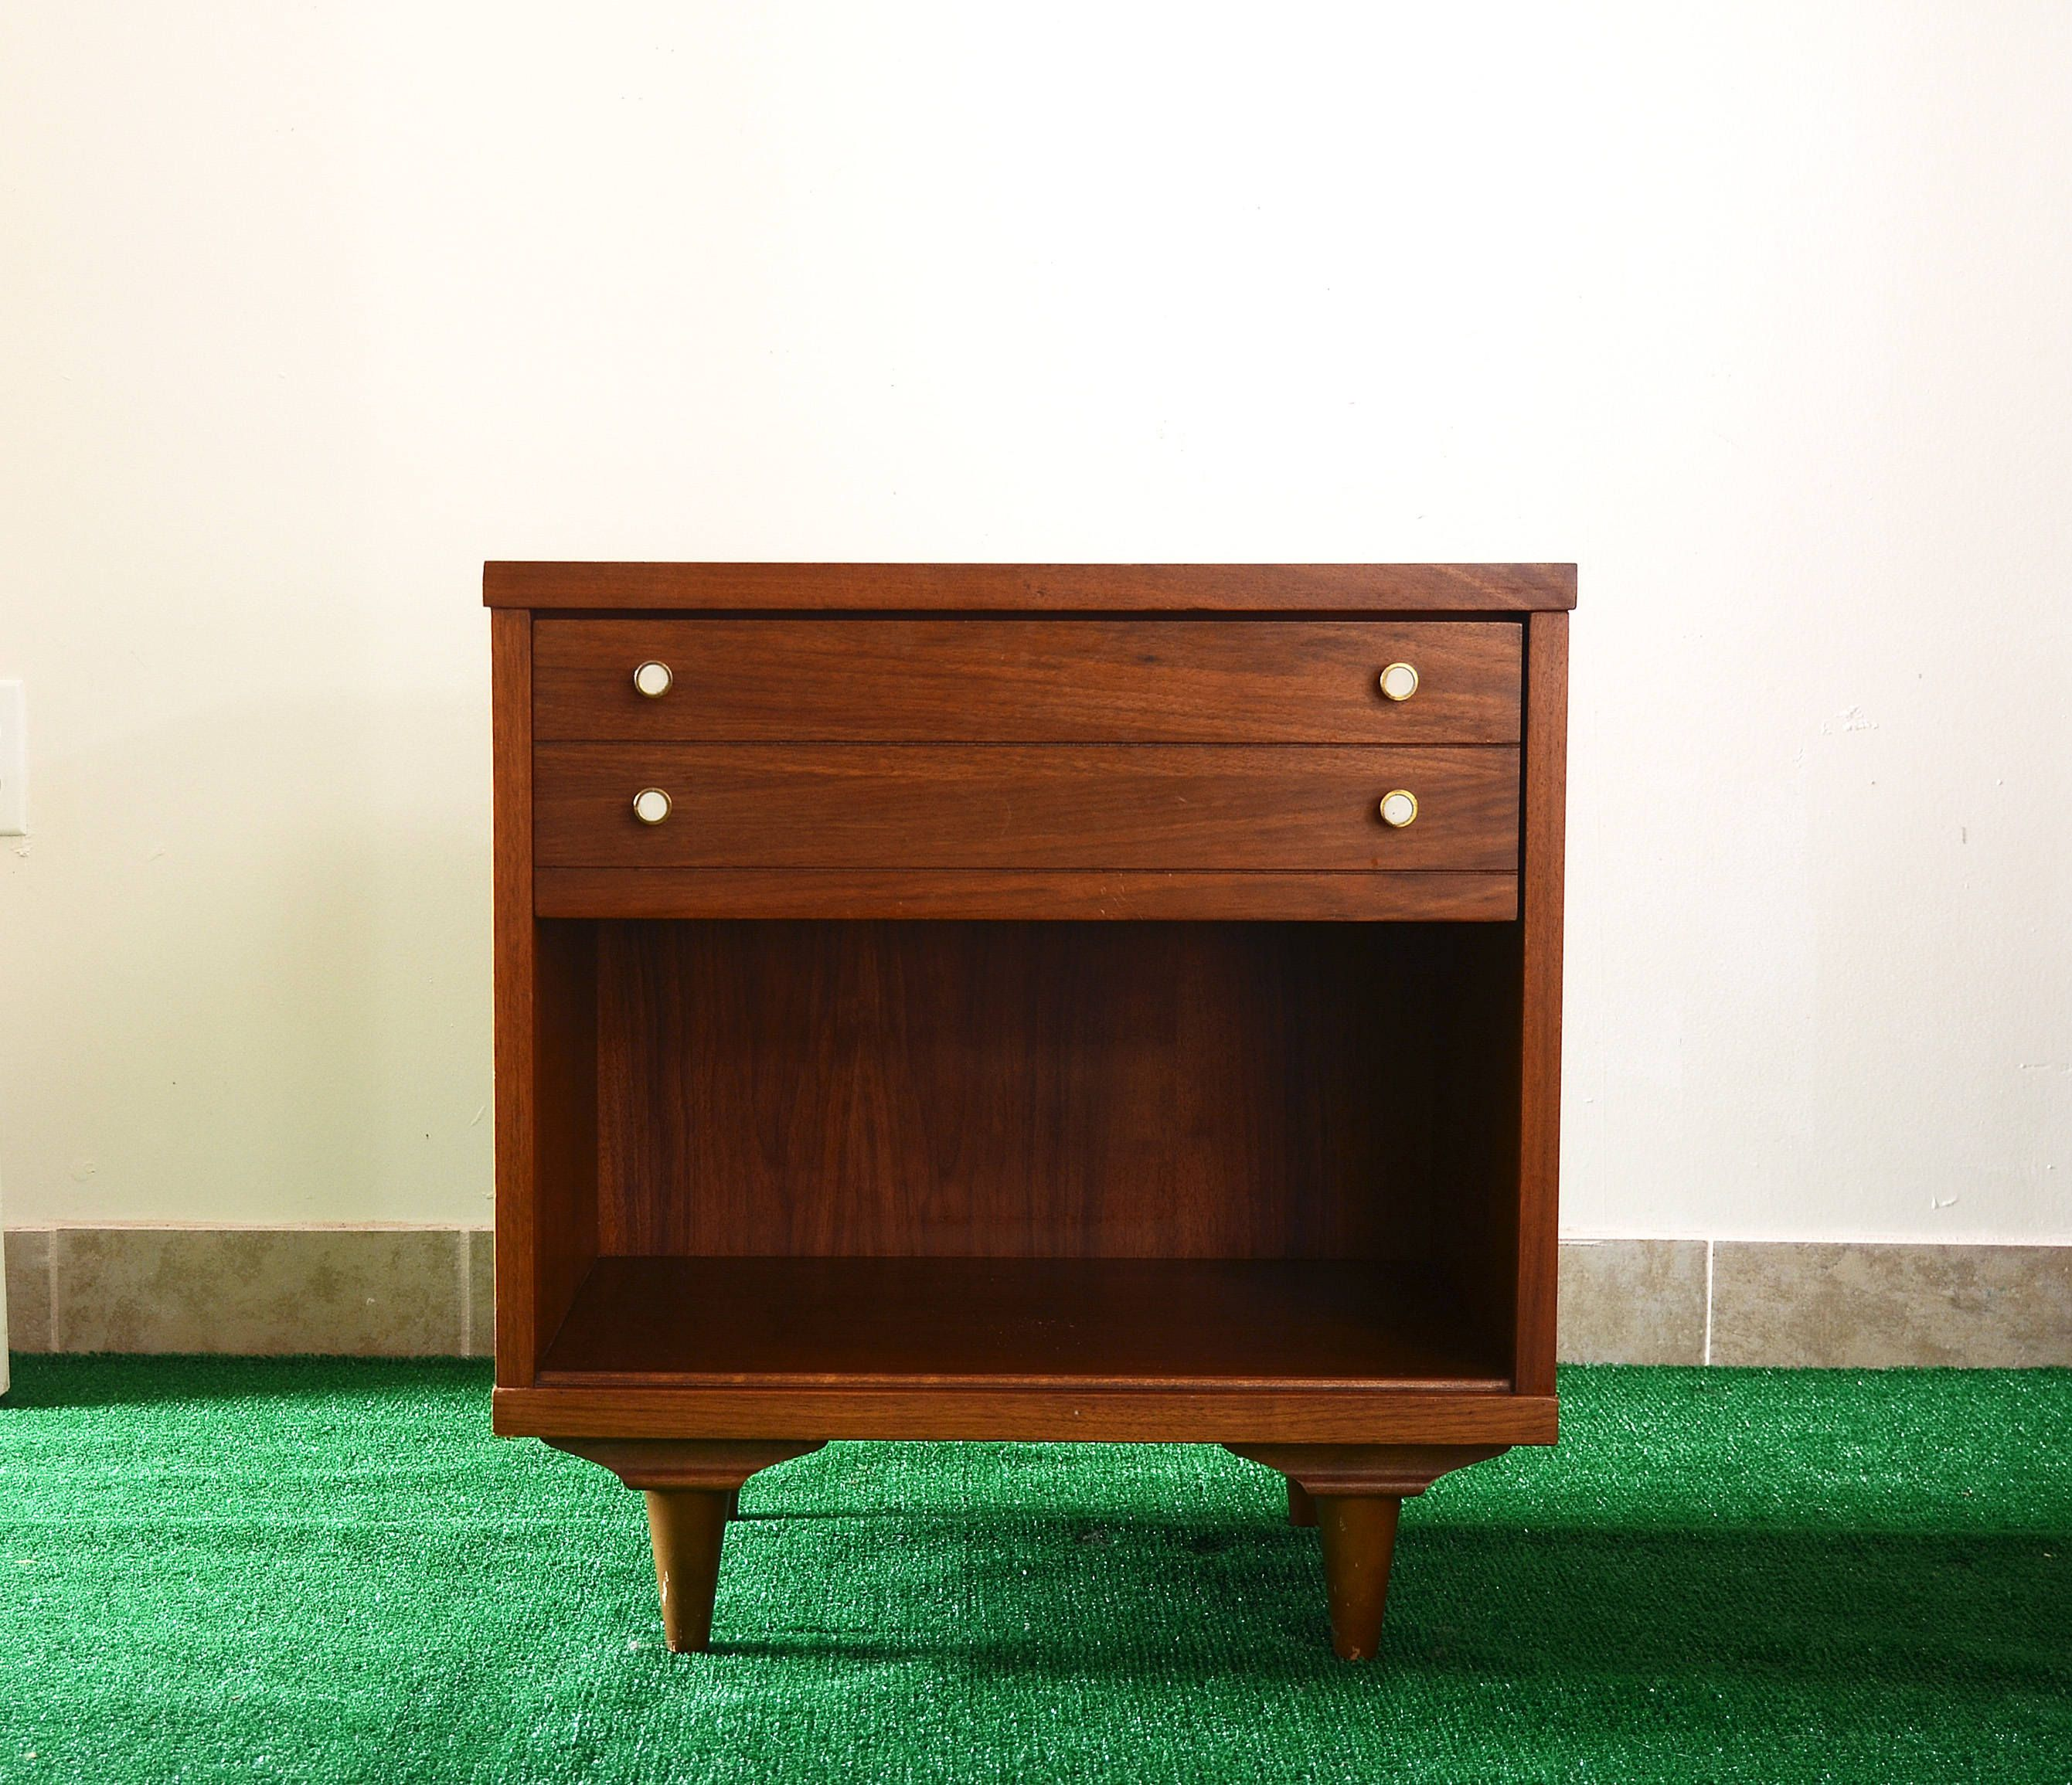 MCM walnut night stand with wood grain laminate top in